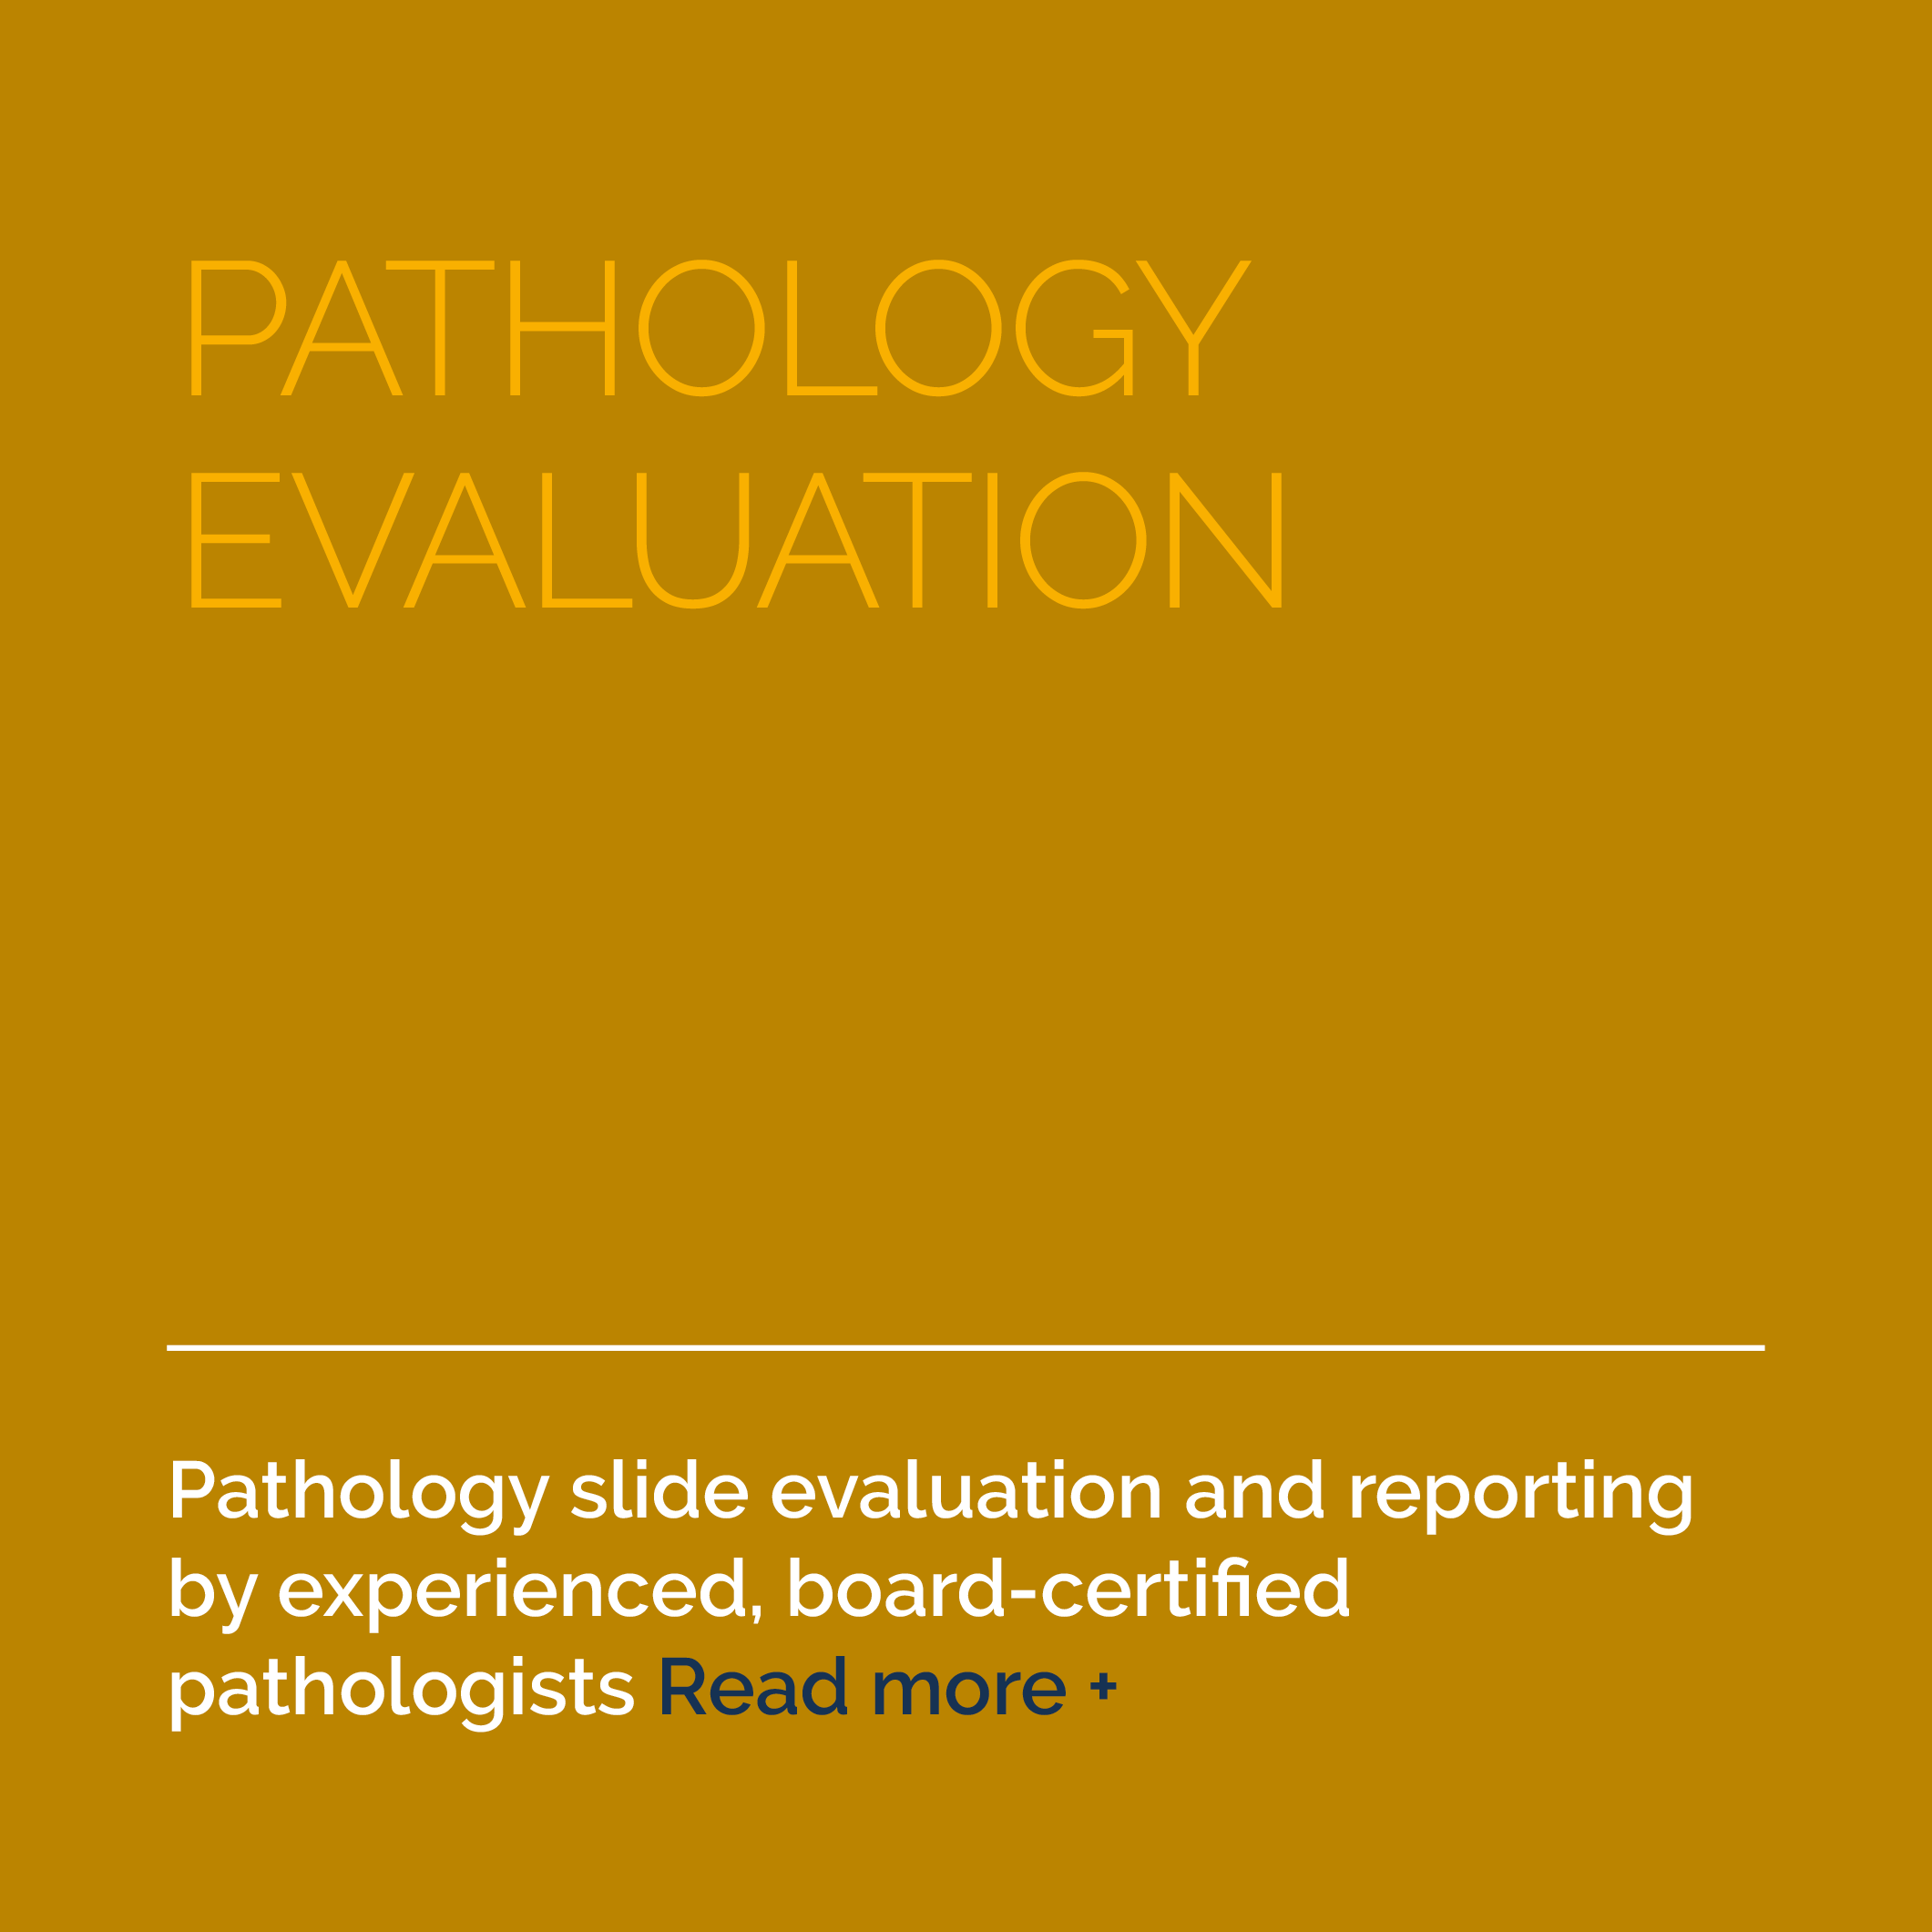 6-Services-Pathology-Evaluation-AFTER.png